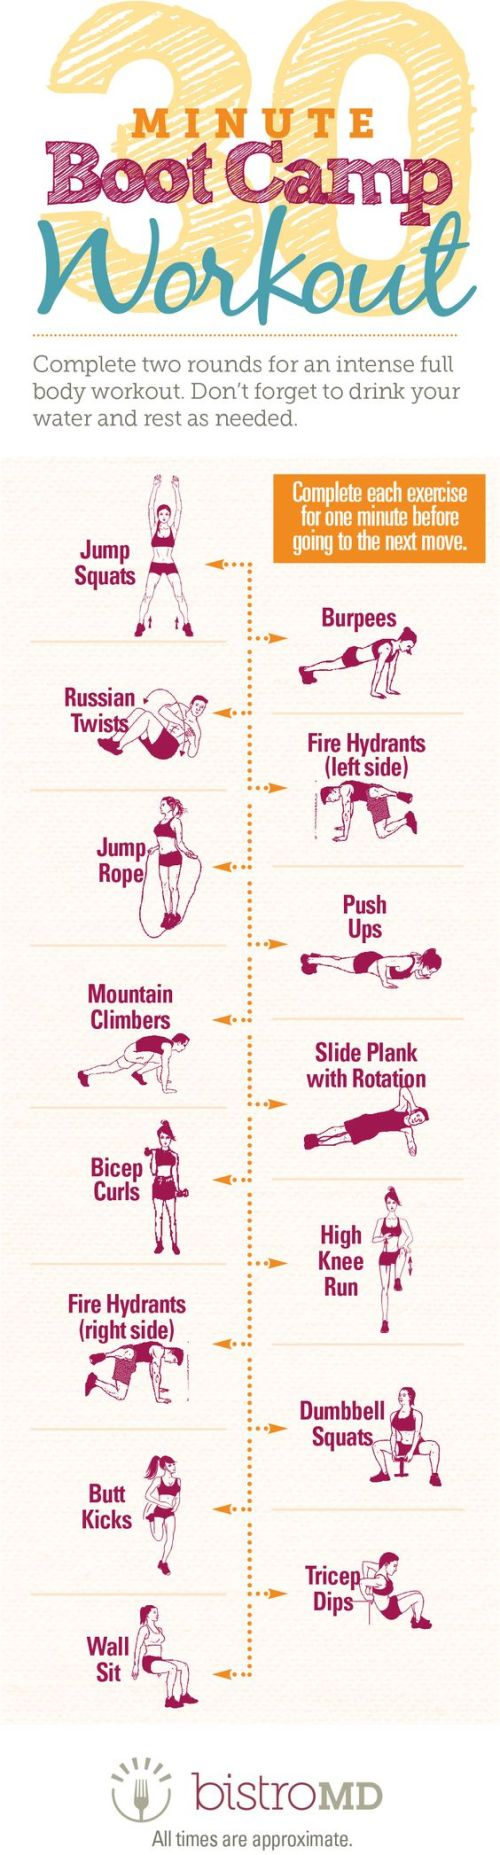 small resolution of 30 minute boot camp workout